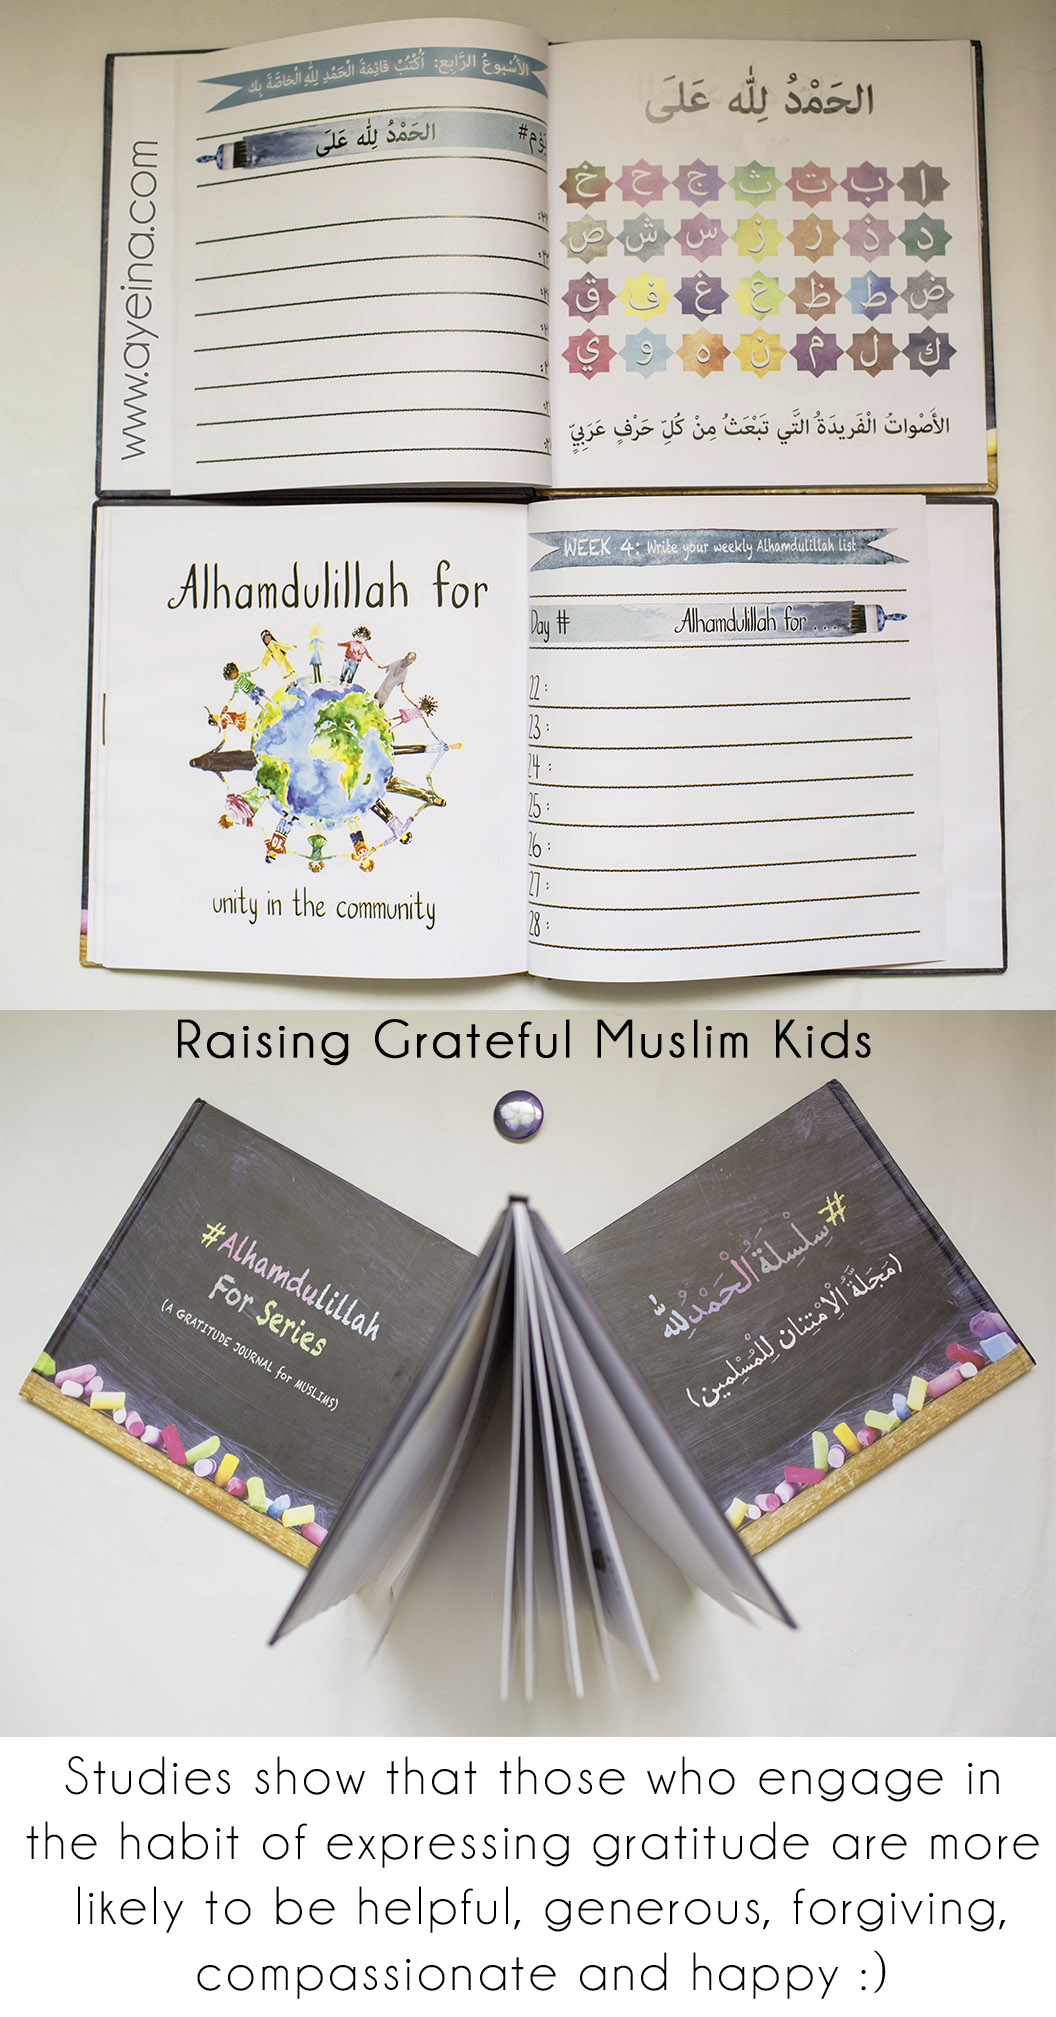 muslim journal, gratitude journal in english and arabic, raising grateful muslim kids, secret of happiness in islam, joy, compassion, generous kids